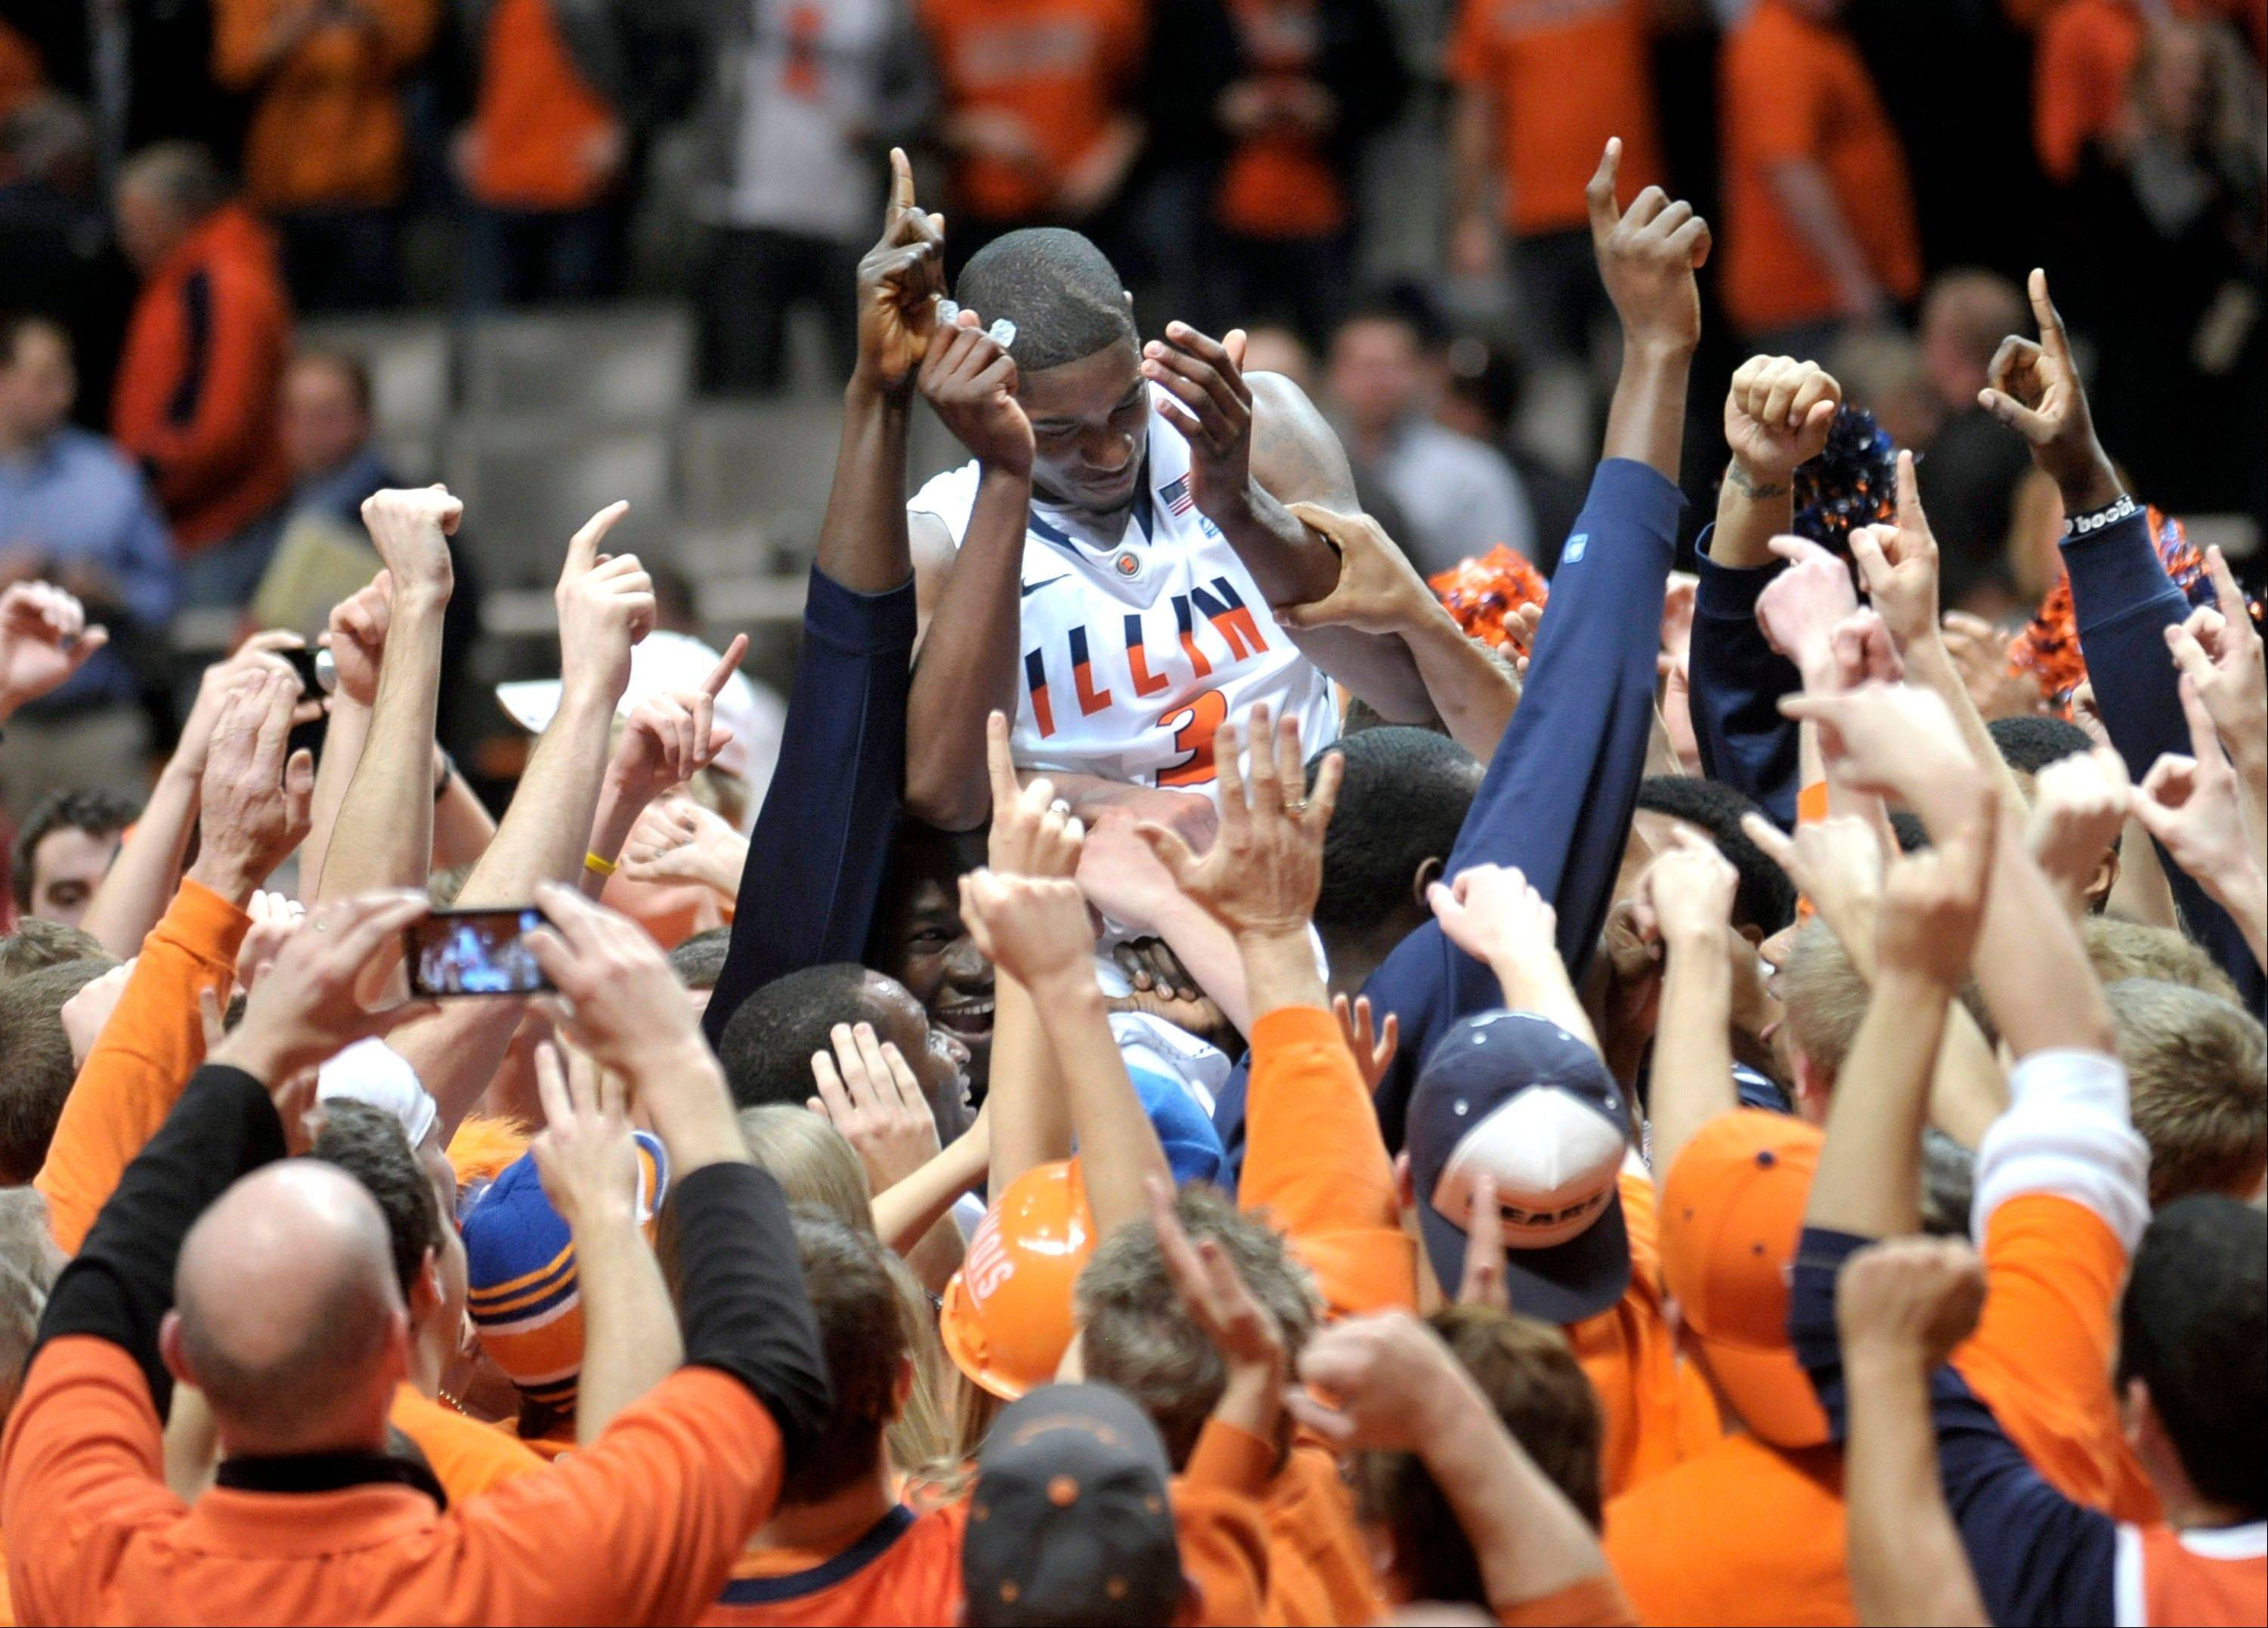 Former Warren High School star Brandon Paul returns for another season of college basketball at Illinois. He was instrumental in the Illini upseting Ohio State last January.